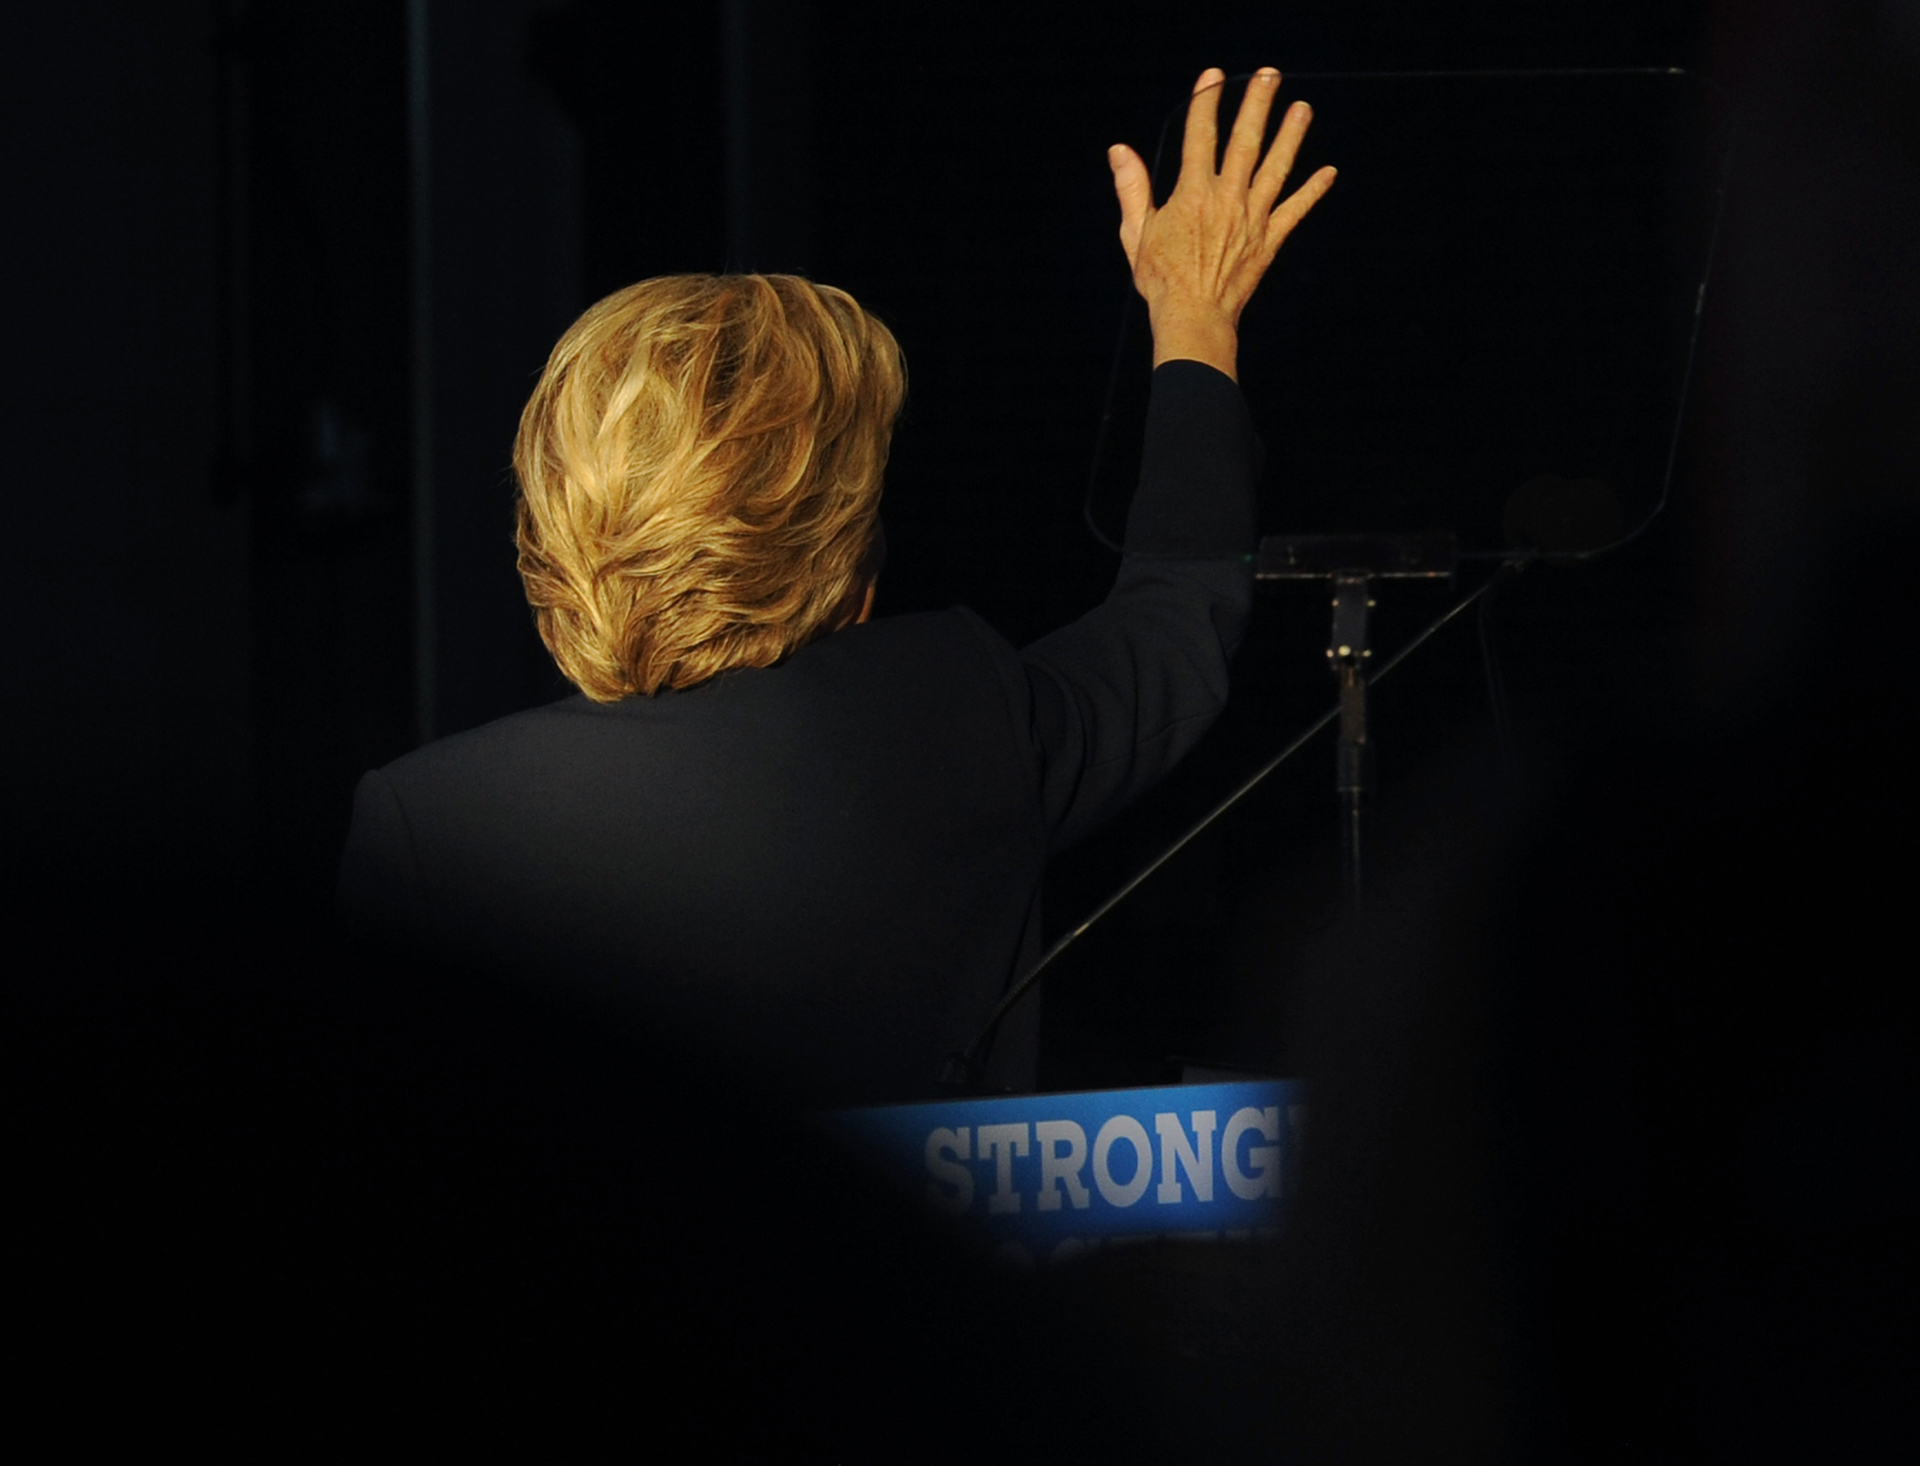 Democratic presidential candidate, former Secretary of State Hillary Clinton, waves to supporters at Detroit's Eastern Market on Friday, November 4, 2016 (photo by Rodney Curtis)